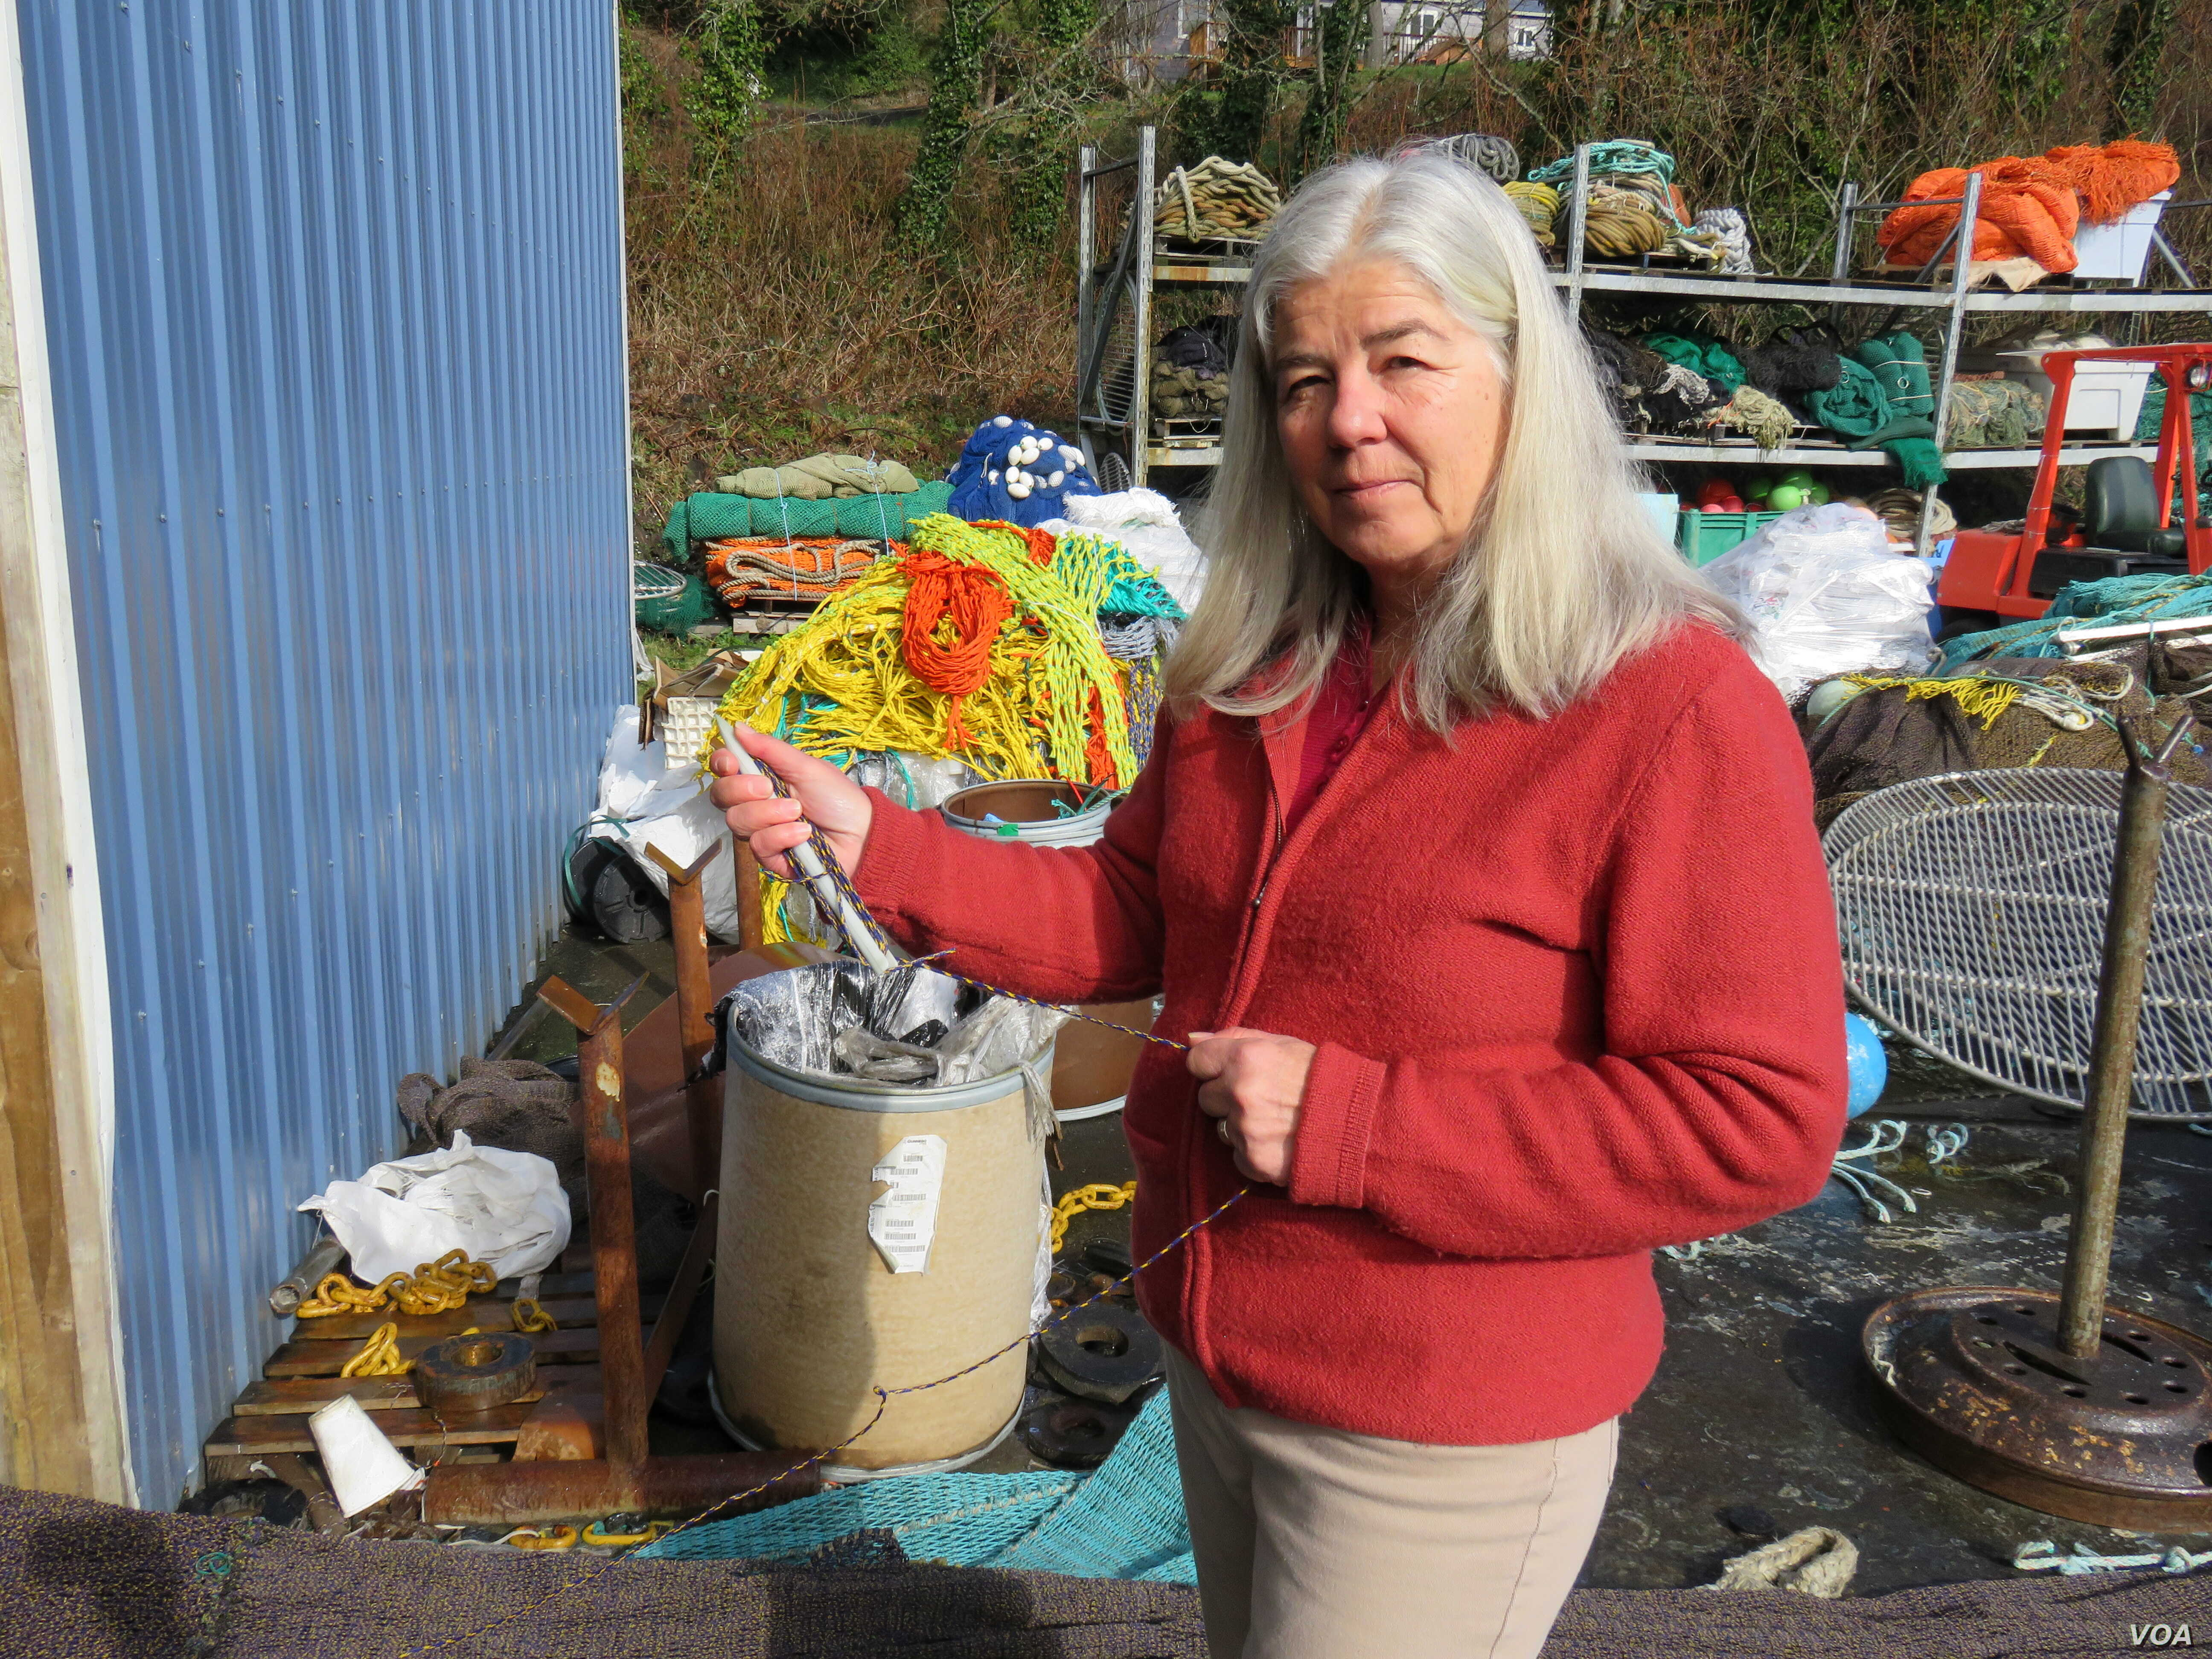 Sara Skamser has worked on and around fishing boats most of her adult life.